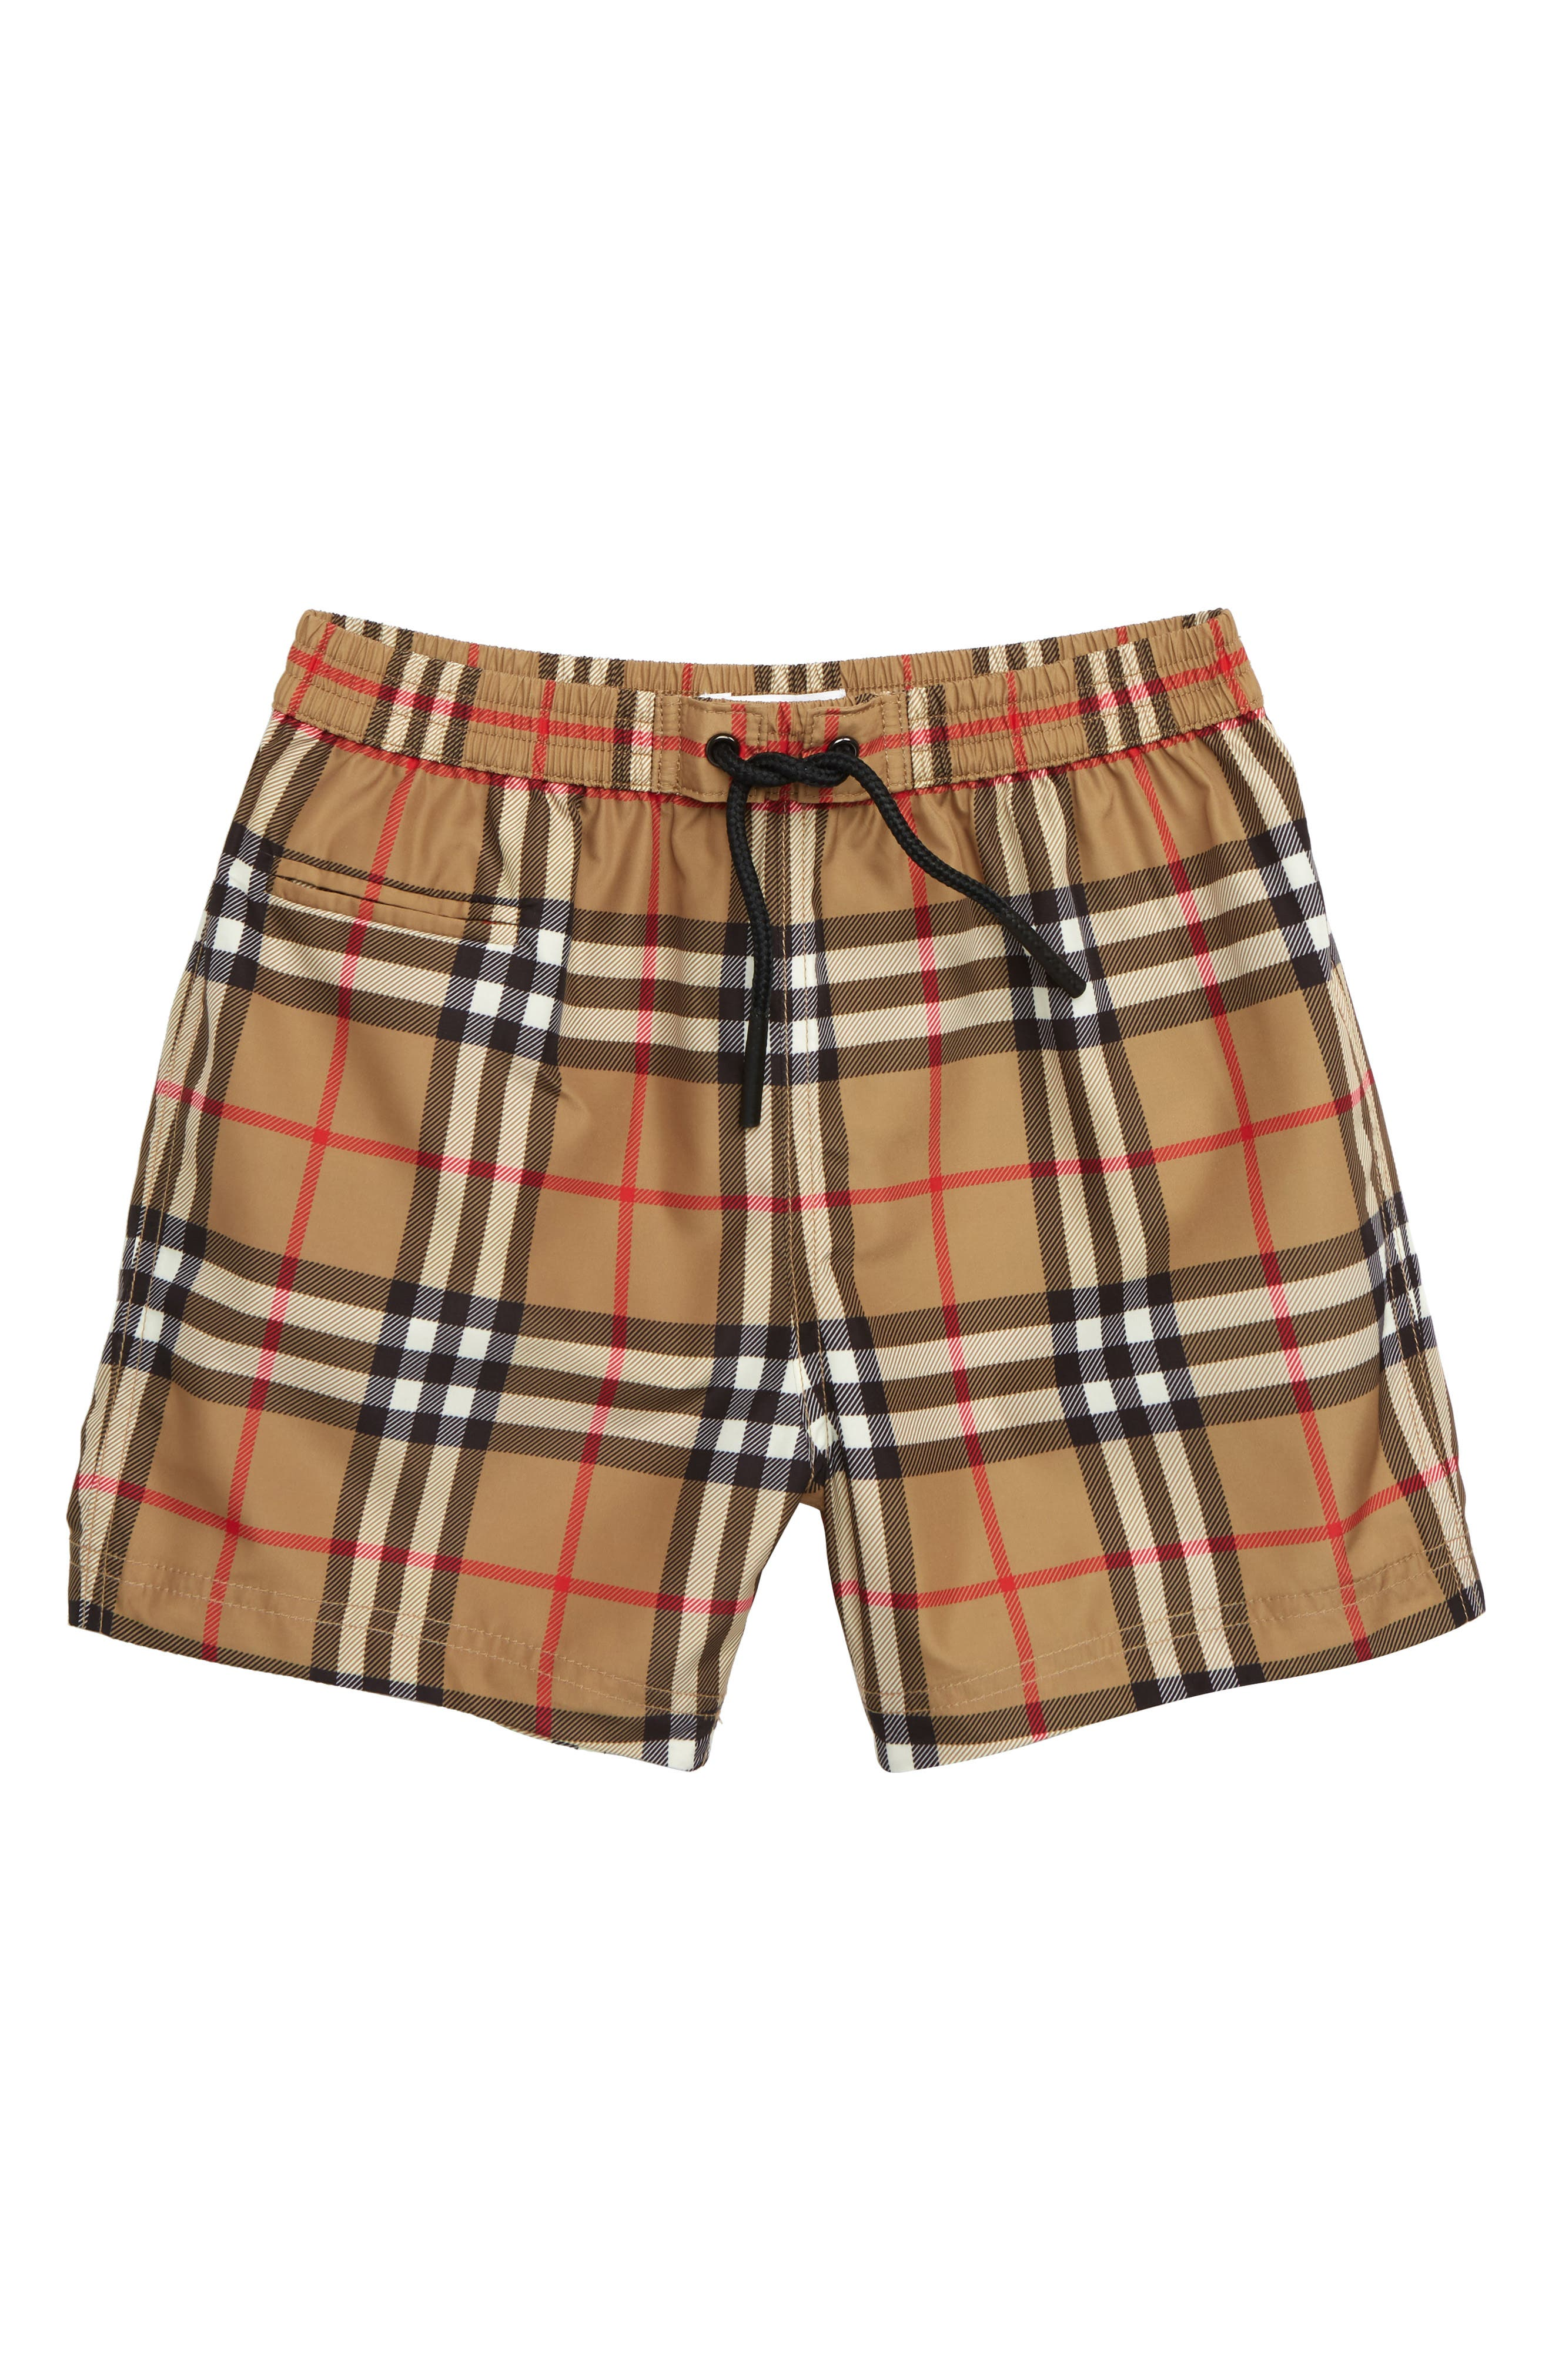 Galvin Check Swim Trunks,                             Main thumbnail 1, color,                             ANTIQUE YELLOW